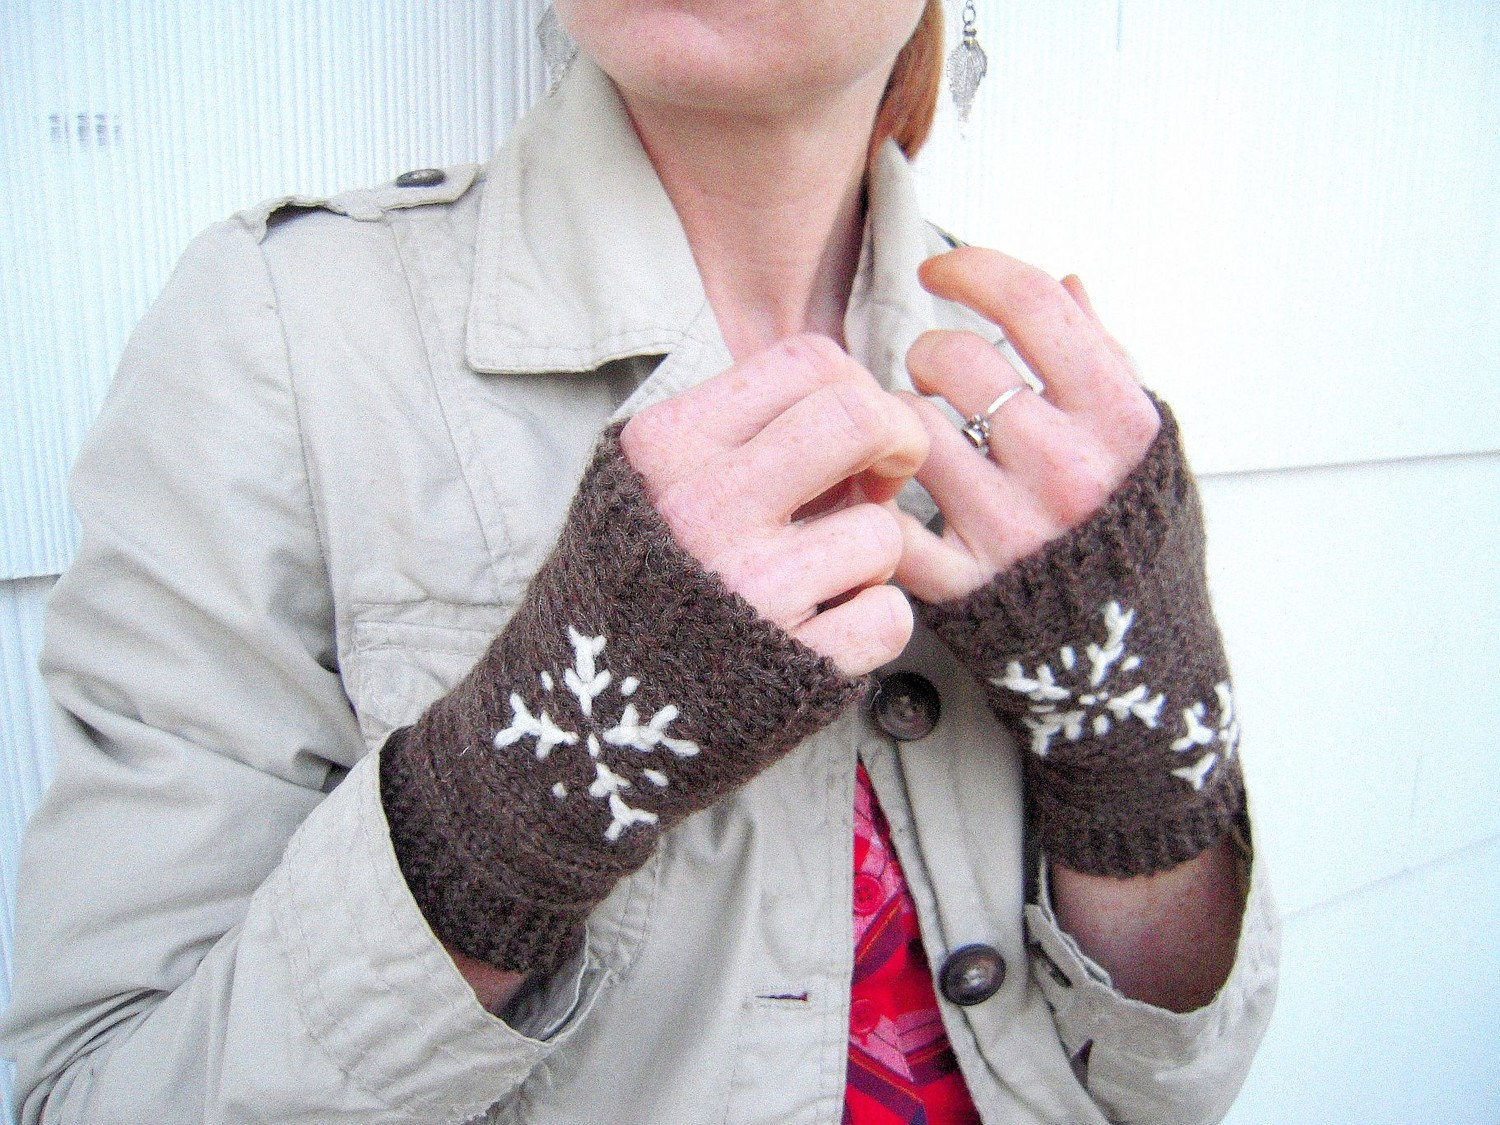 Wooly fingerless mitts, The First Snowfall free shipping